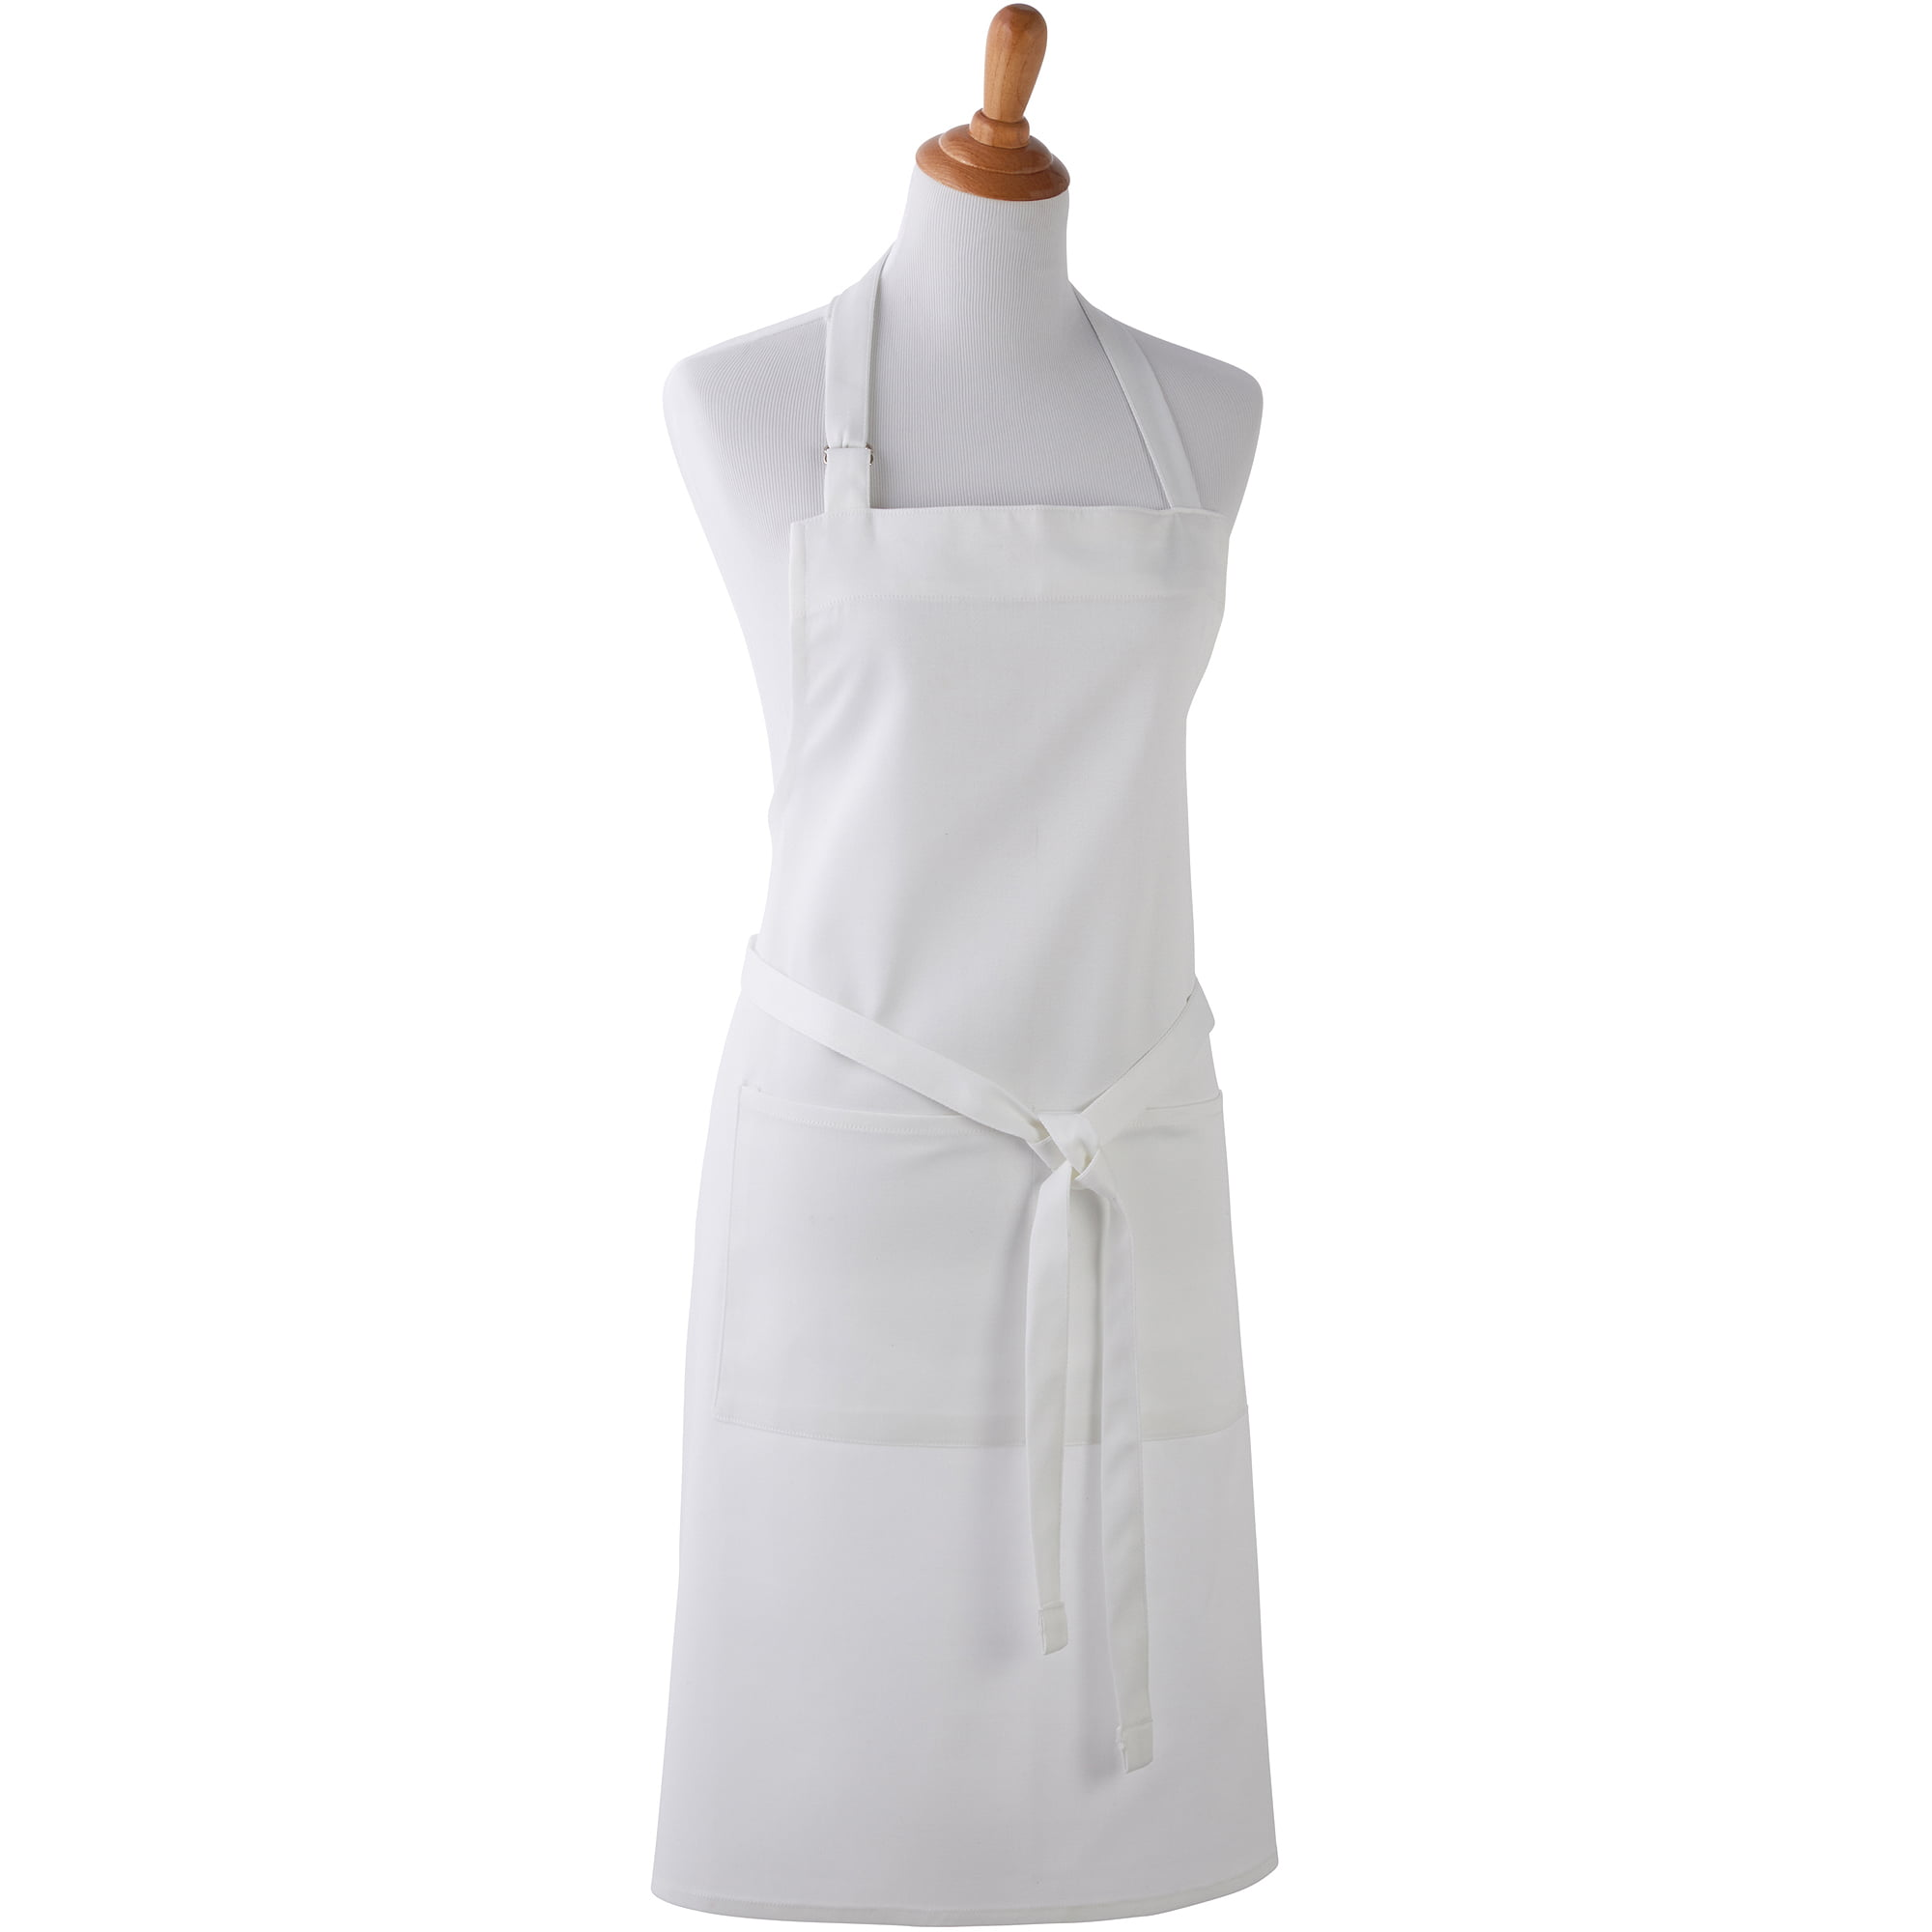 White Kitchen Apron mainstays apron, white - walmart